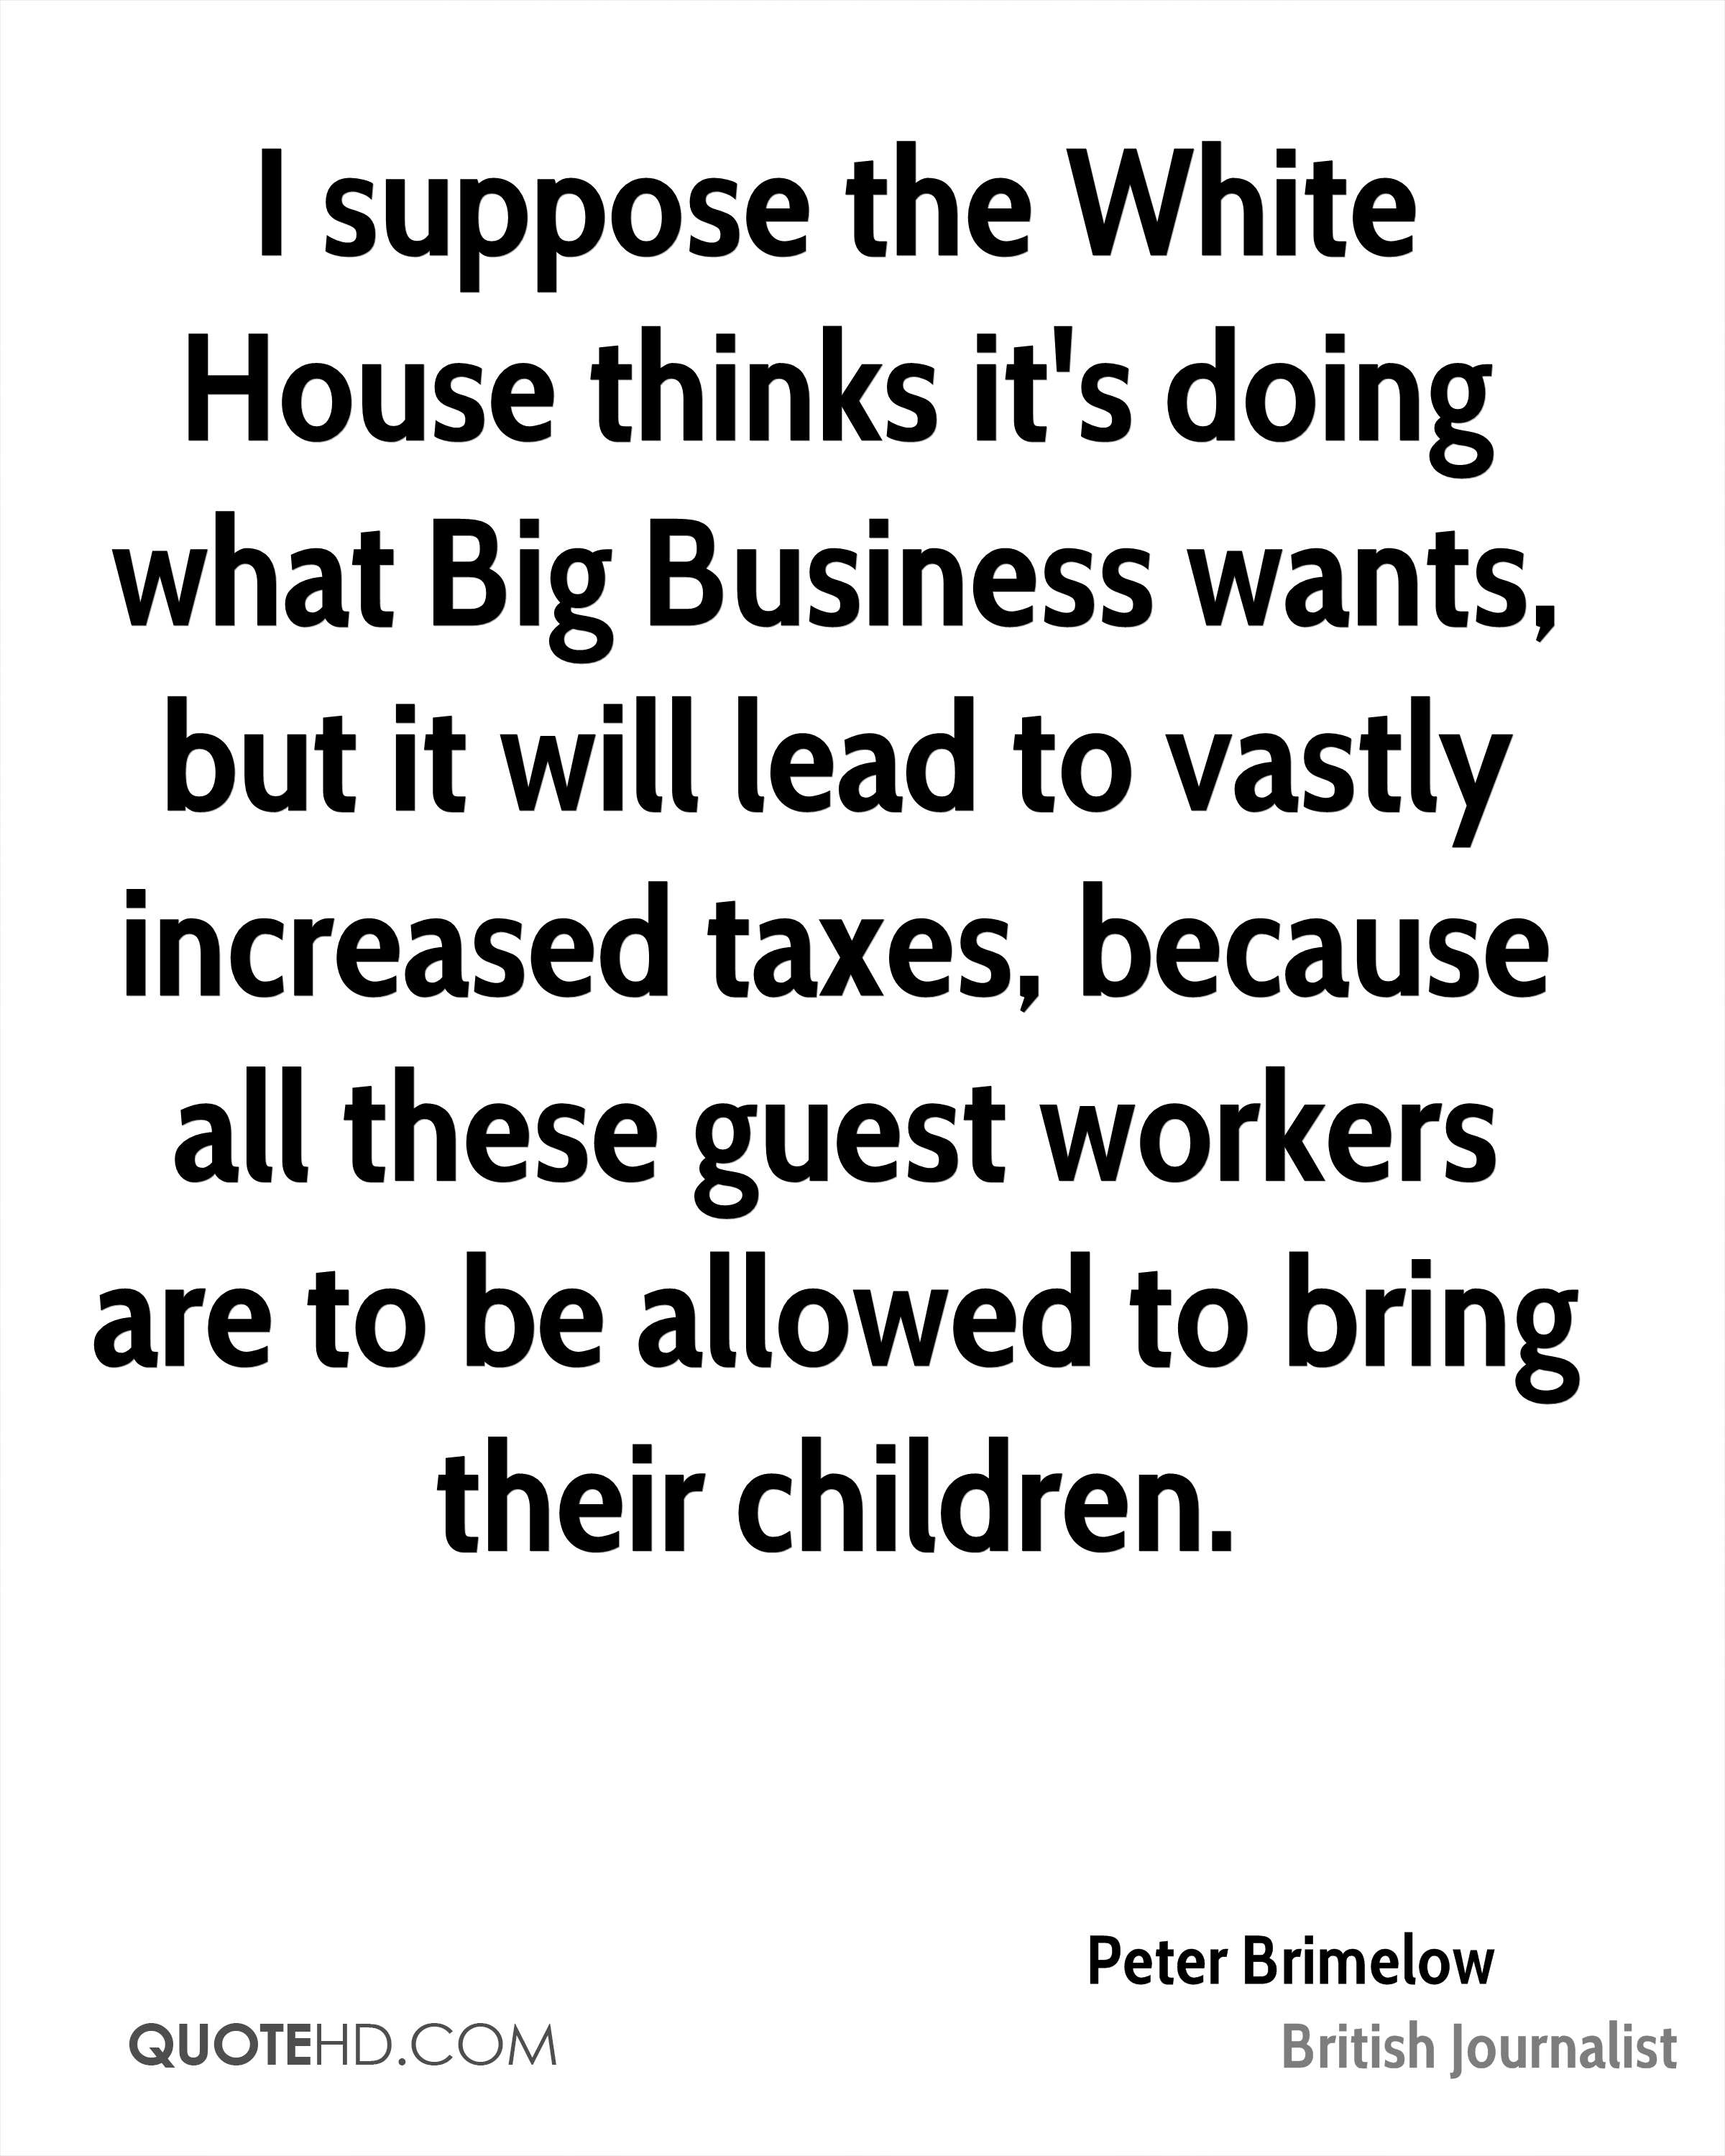 I suppose the White House thinks it's doing what Big Business wants, but it will lead to vastly increased taxes, because all these guest workers are to be allowed to bring their children.